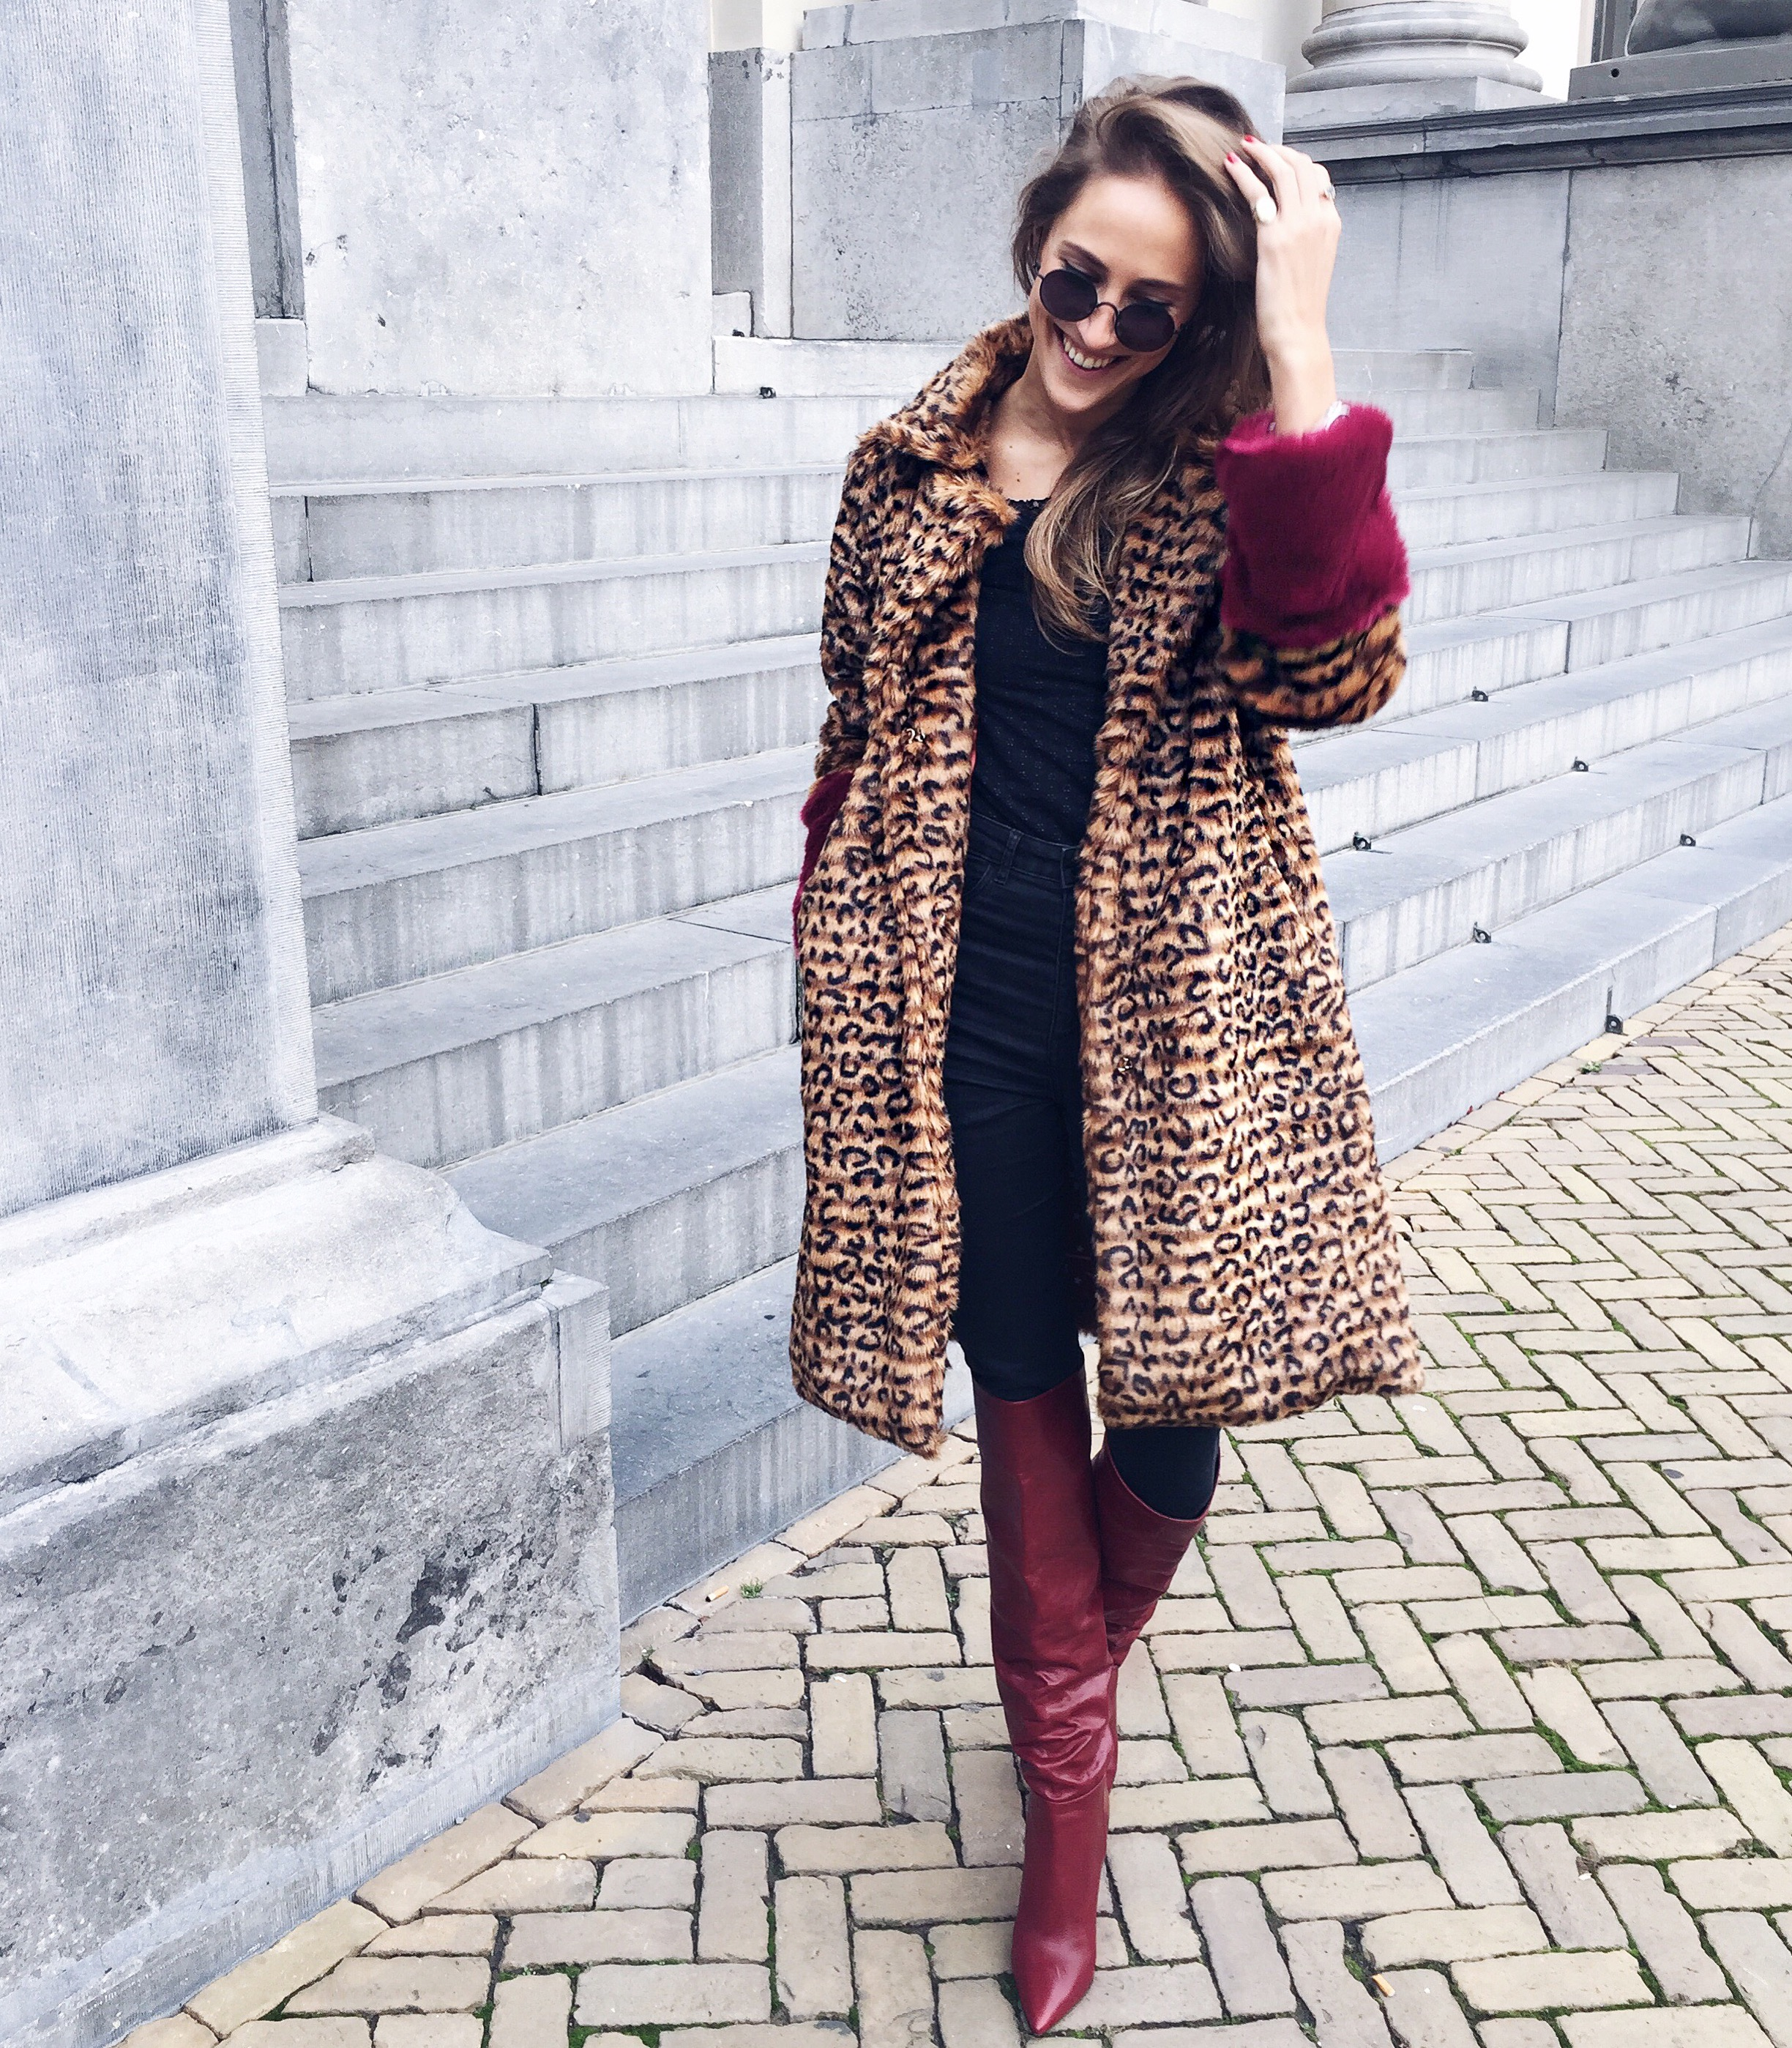 linda_tsetis_colourful_rebel_faux_fur_coat